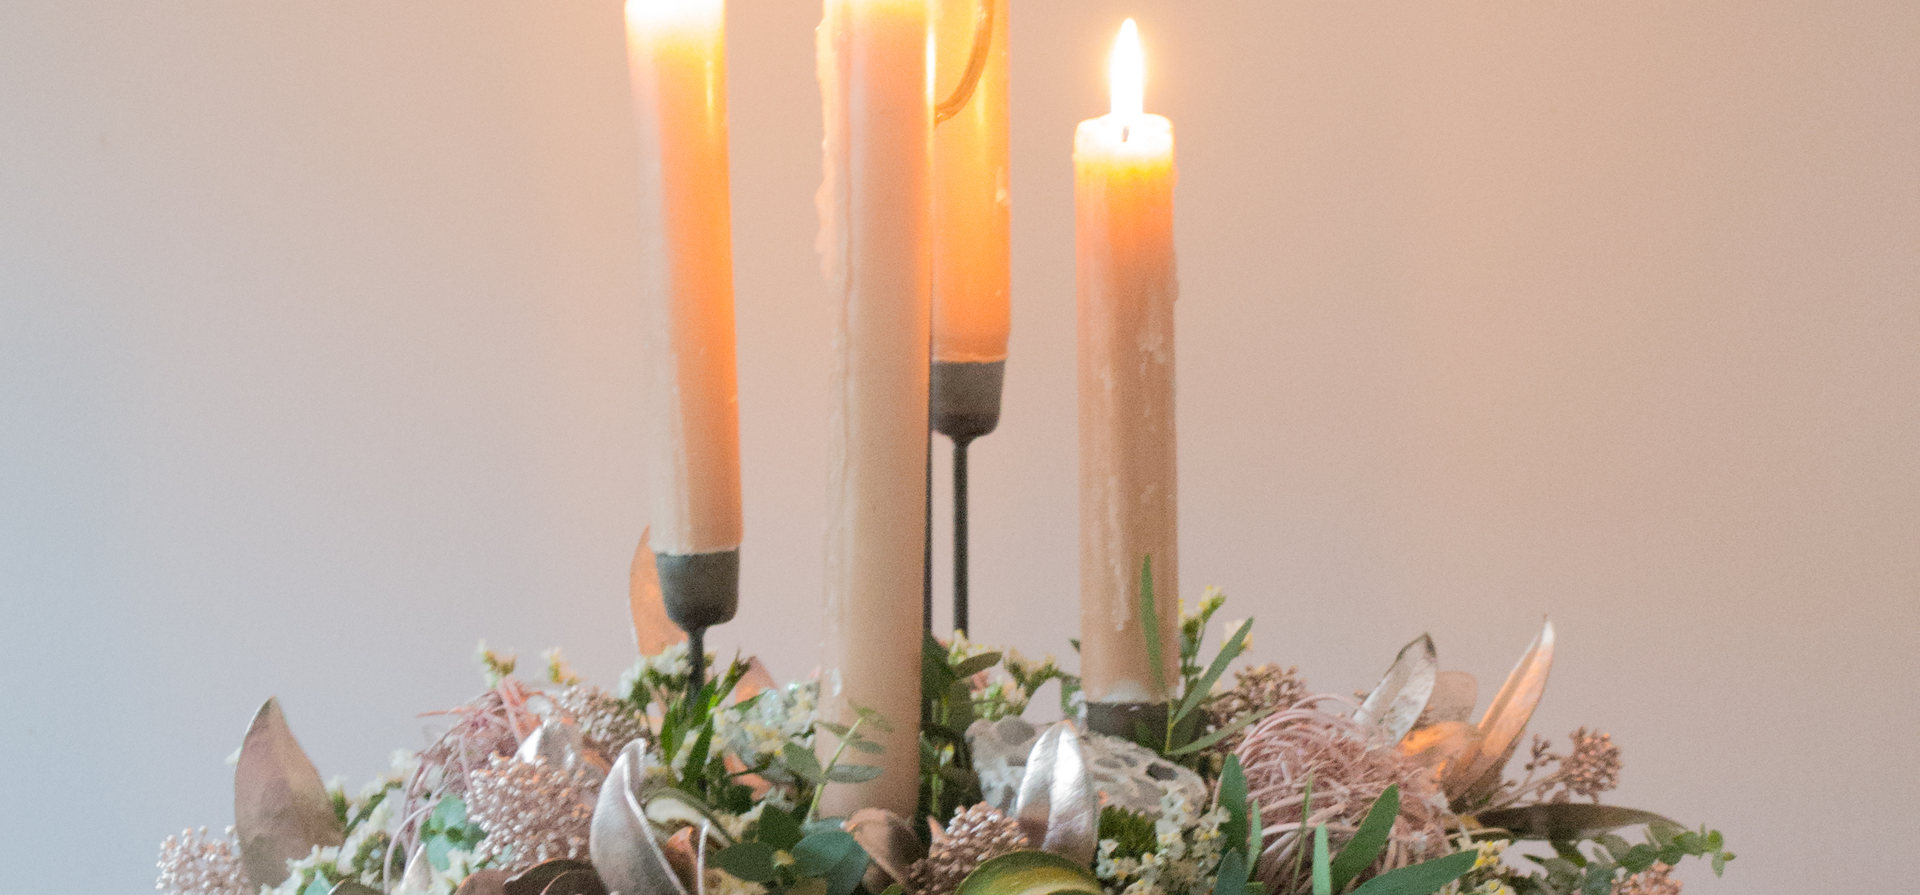 'Graceful heirloom' Christmas floral table arrangements